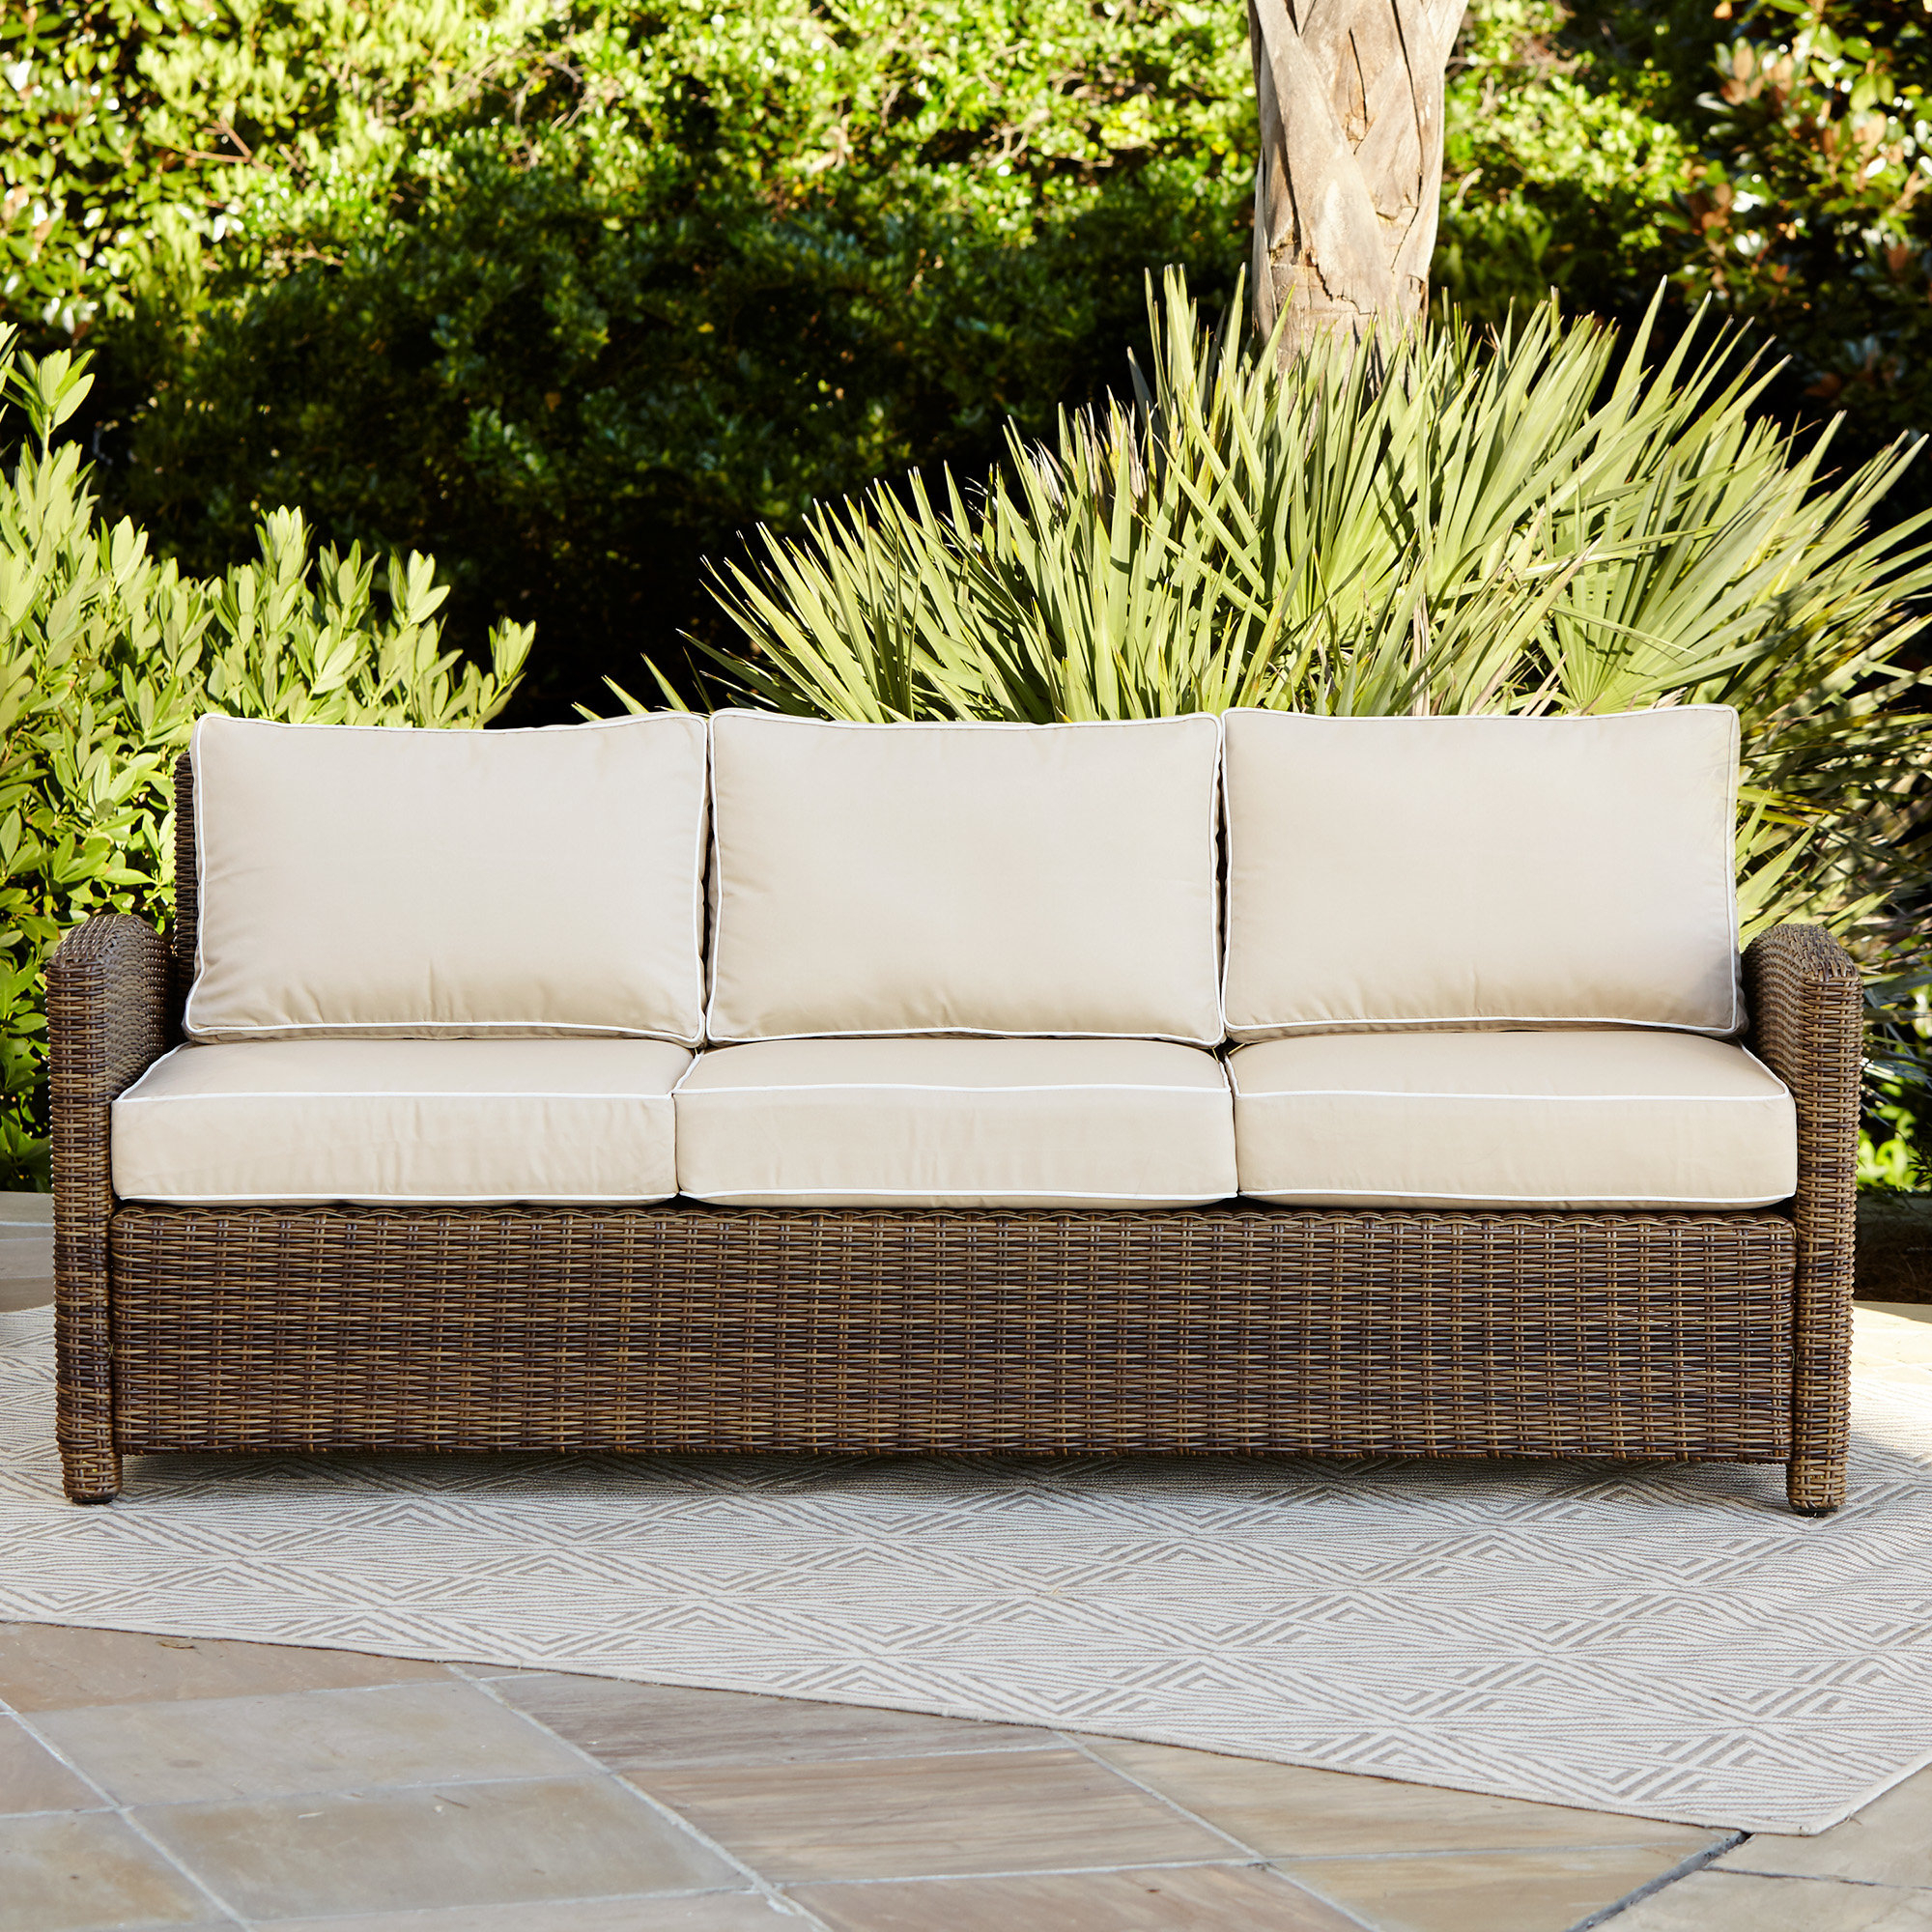 Well Known Lawson Patio Sofa With Cushions Throughout Clifford Patio Sofas With Cushions (View 19 of 20)